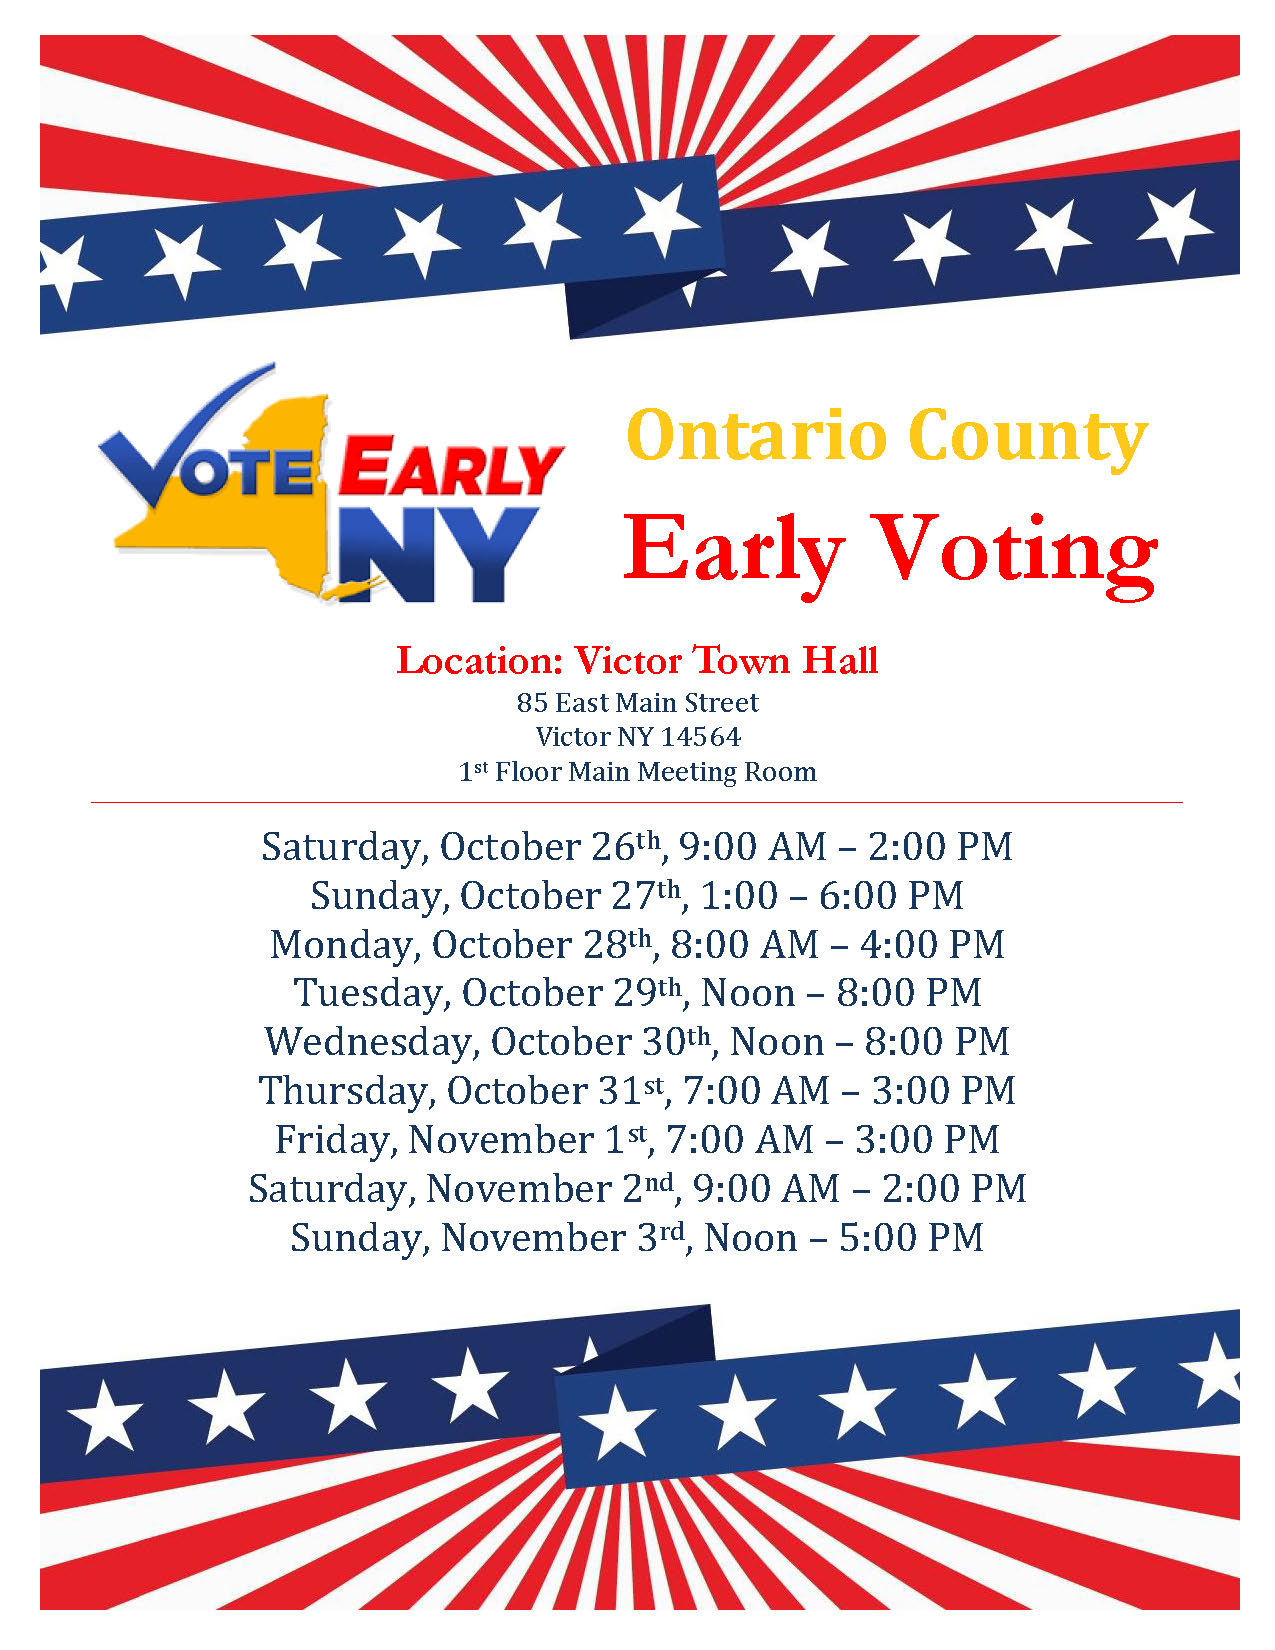 Early Voting Flyer 2019 vote early ny logo red white and blue stars and stripes